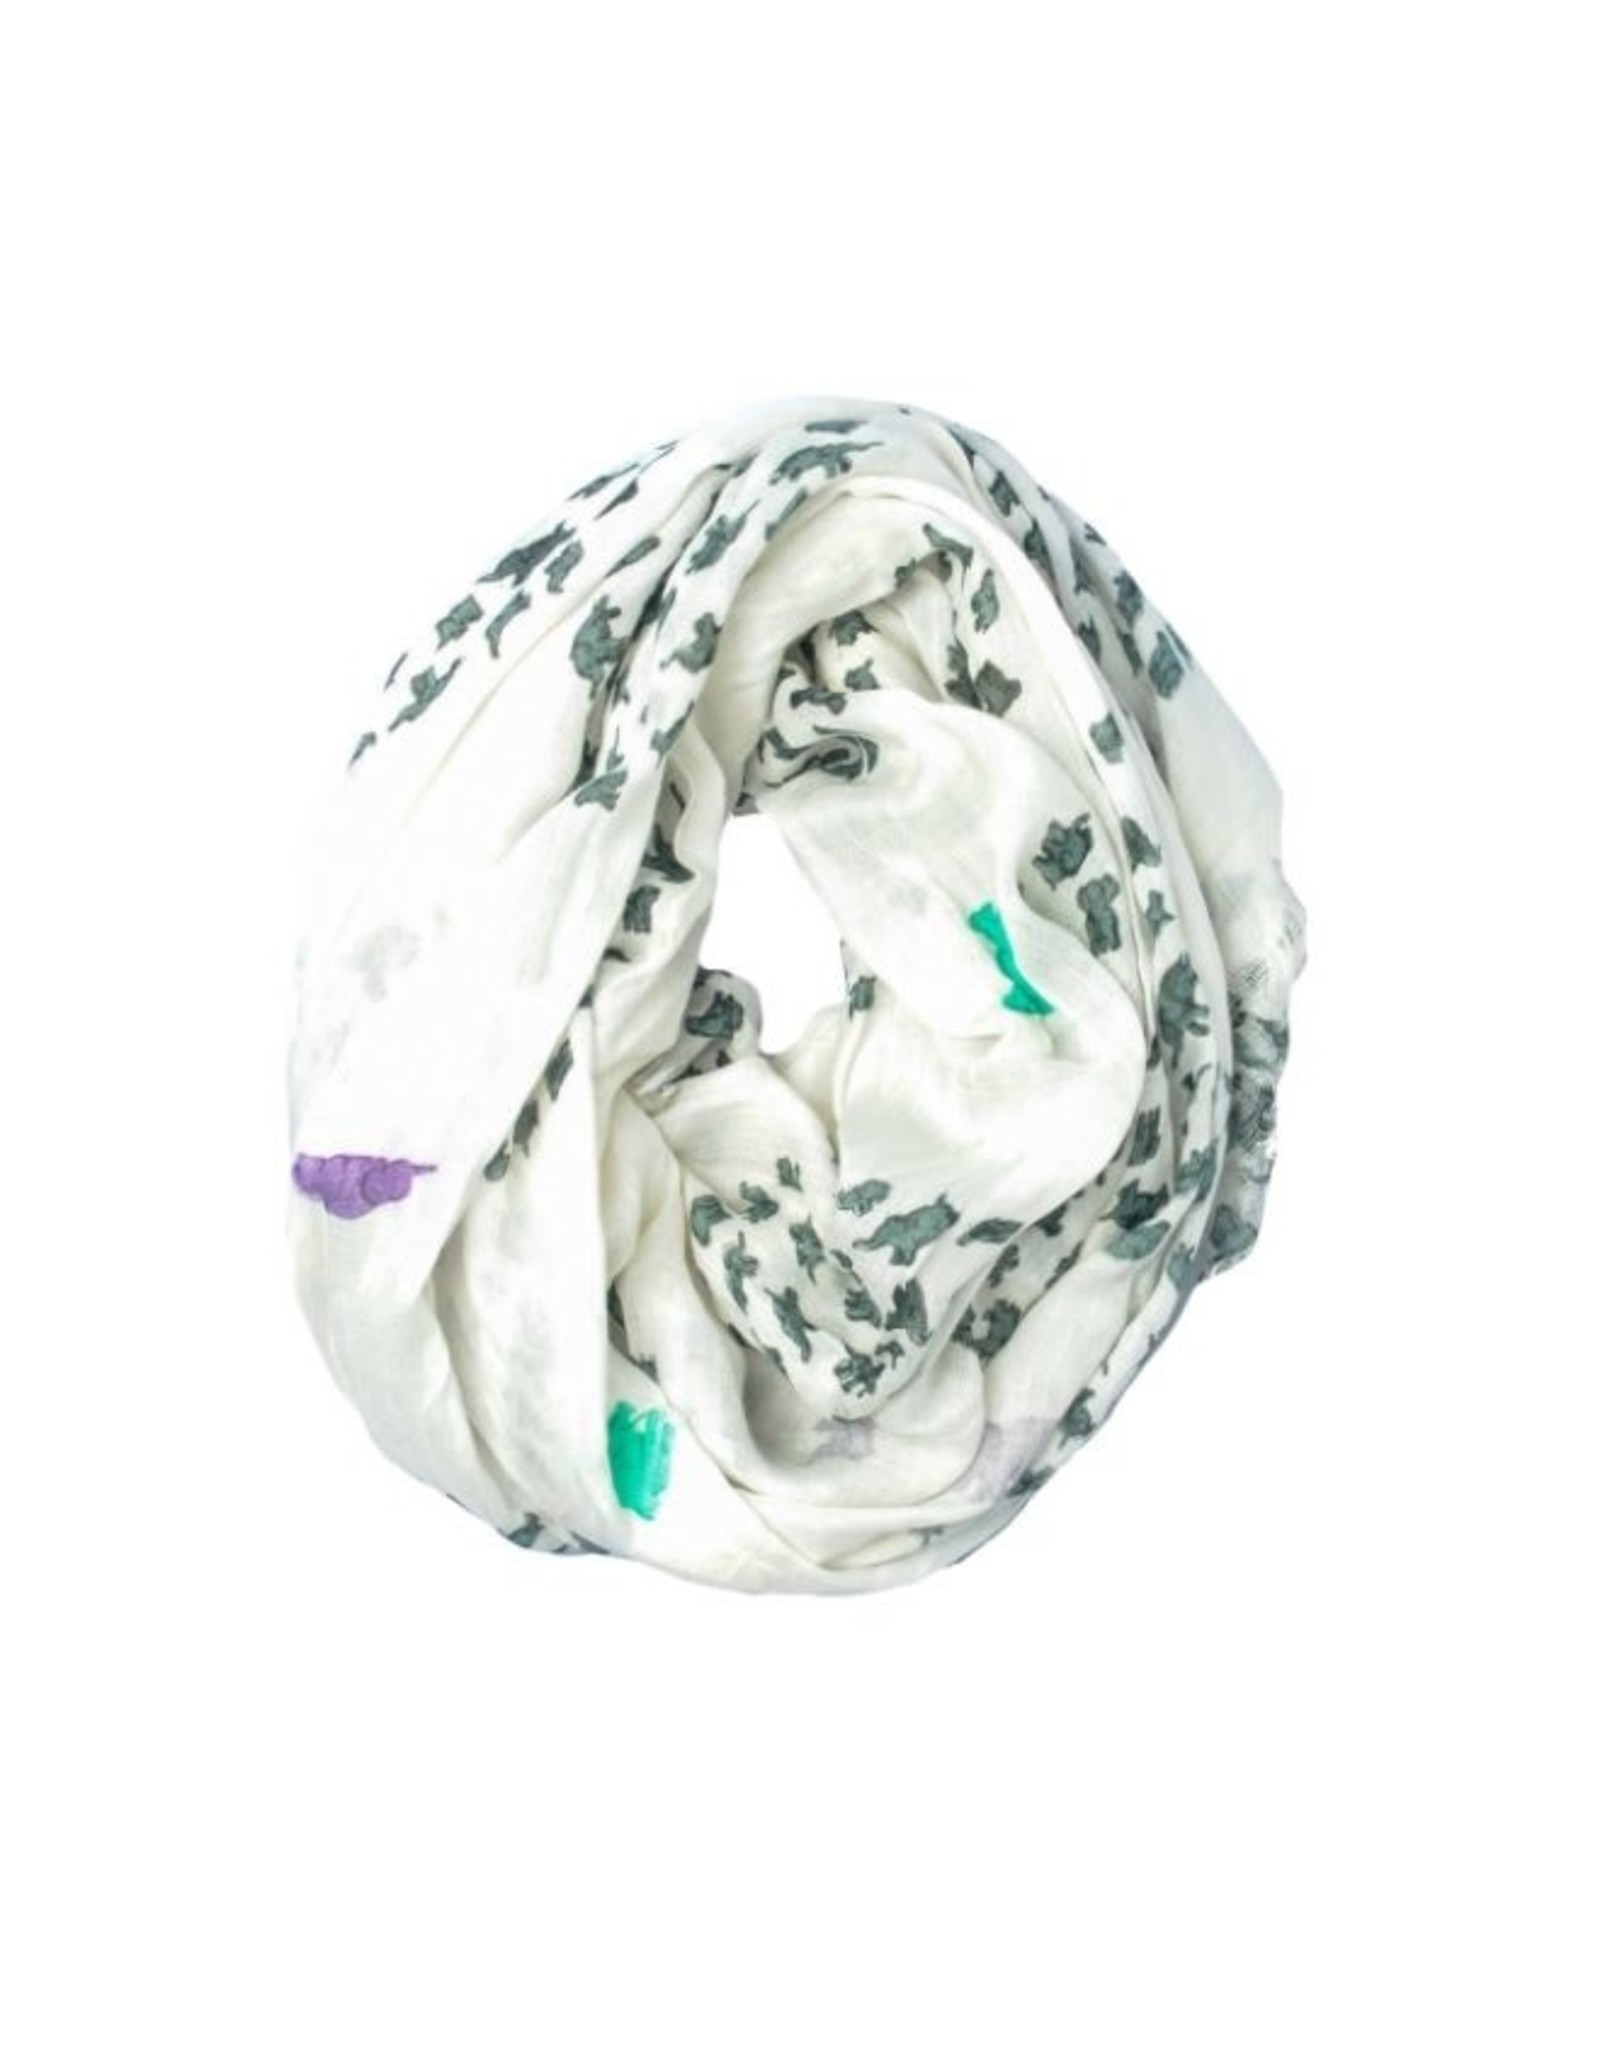 NON-UNIFORM Scarf - Chic Elephant Summer Scarf Scarf (India), Fair Trade Product